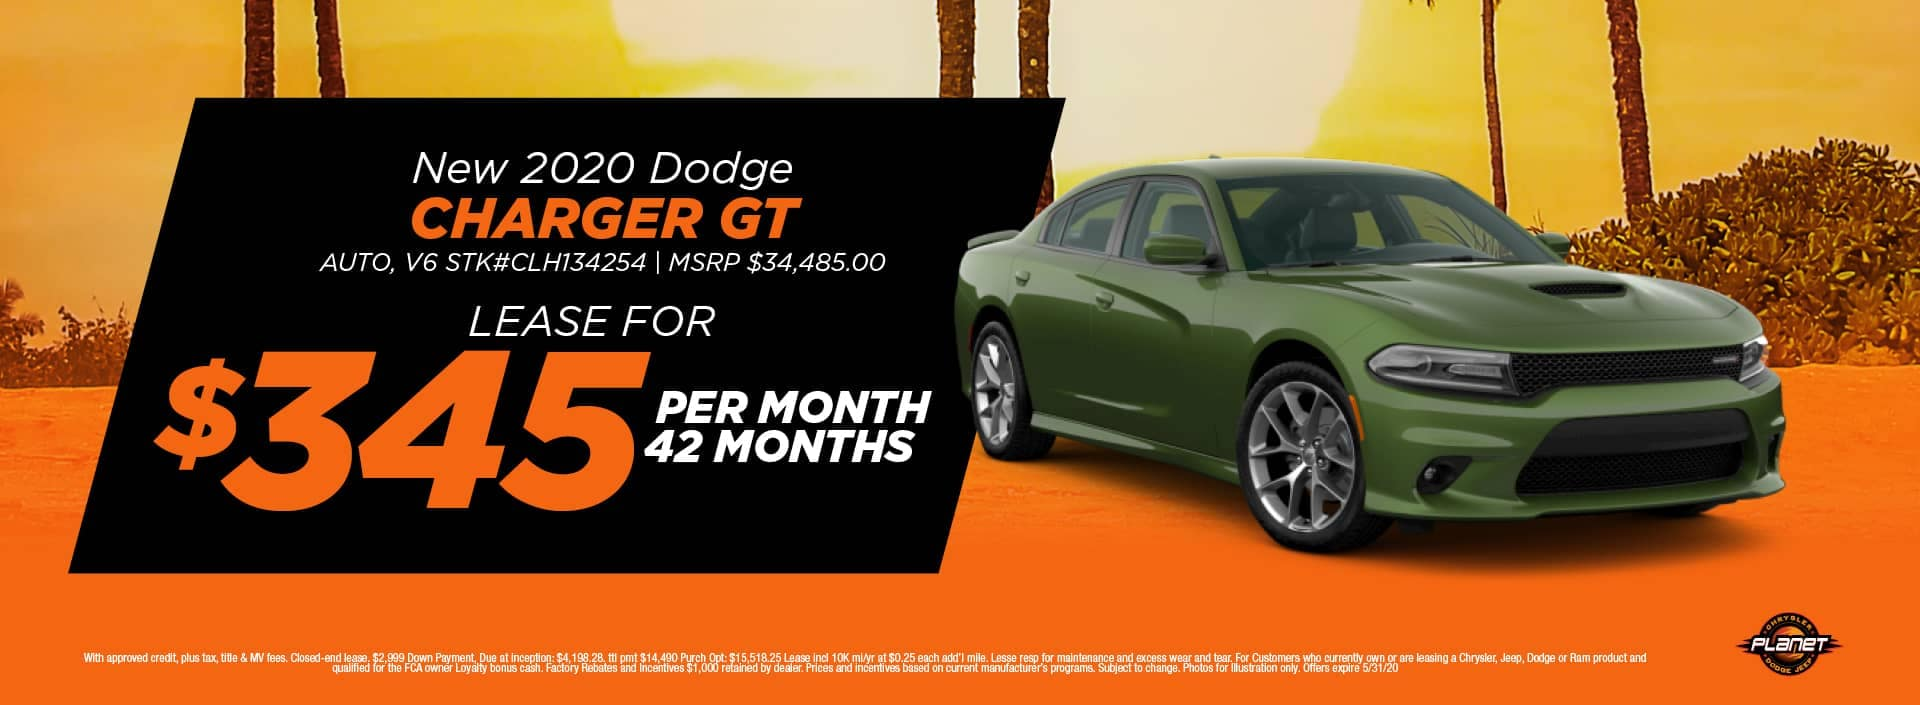 banner for 2020 Charger GT